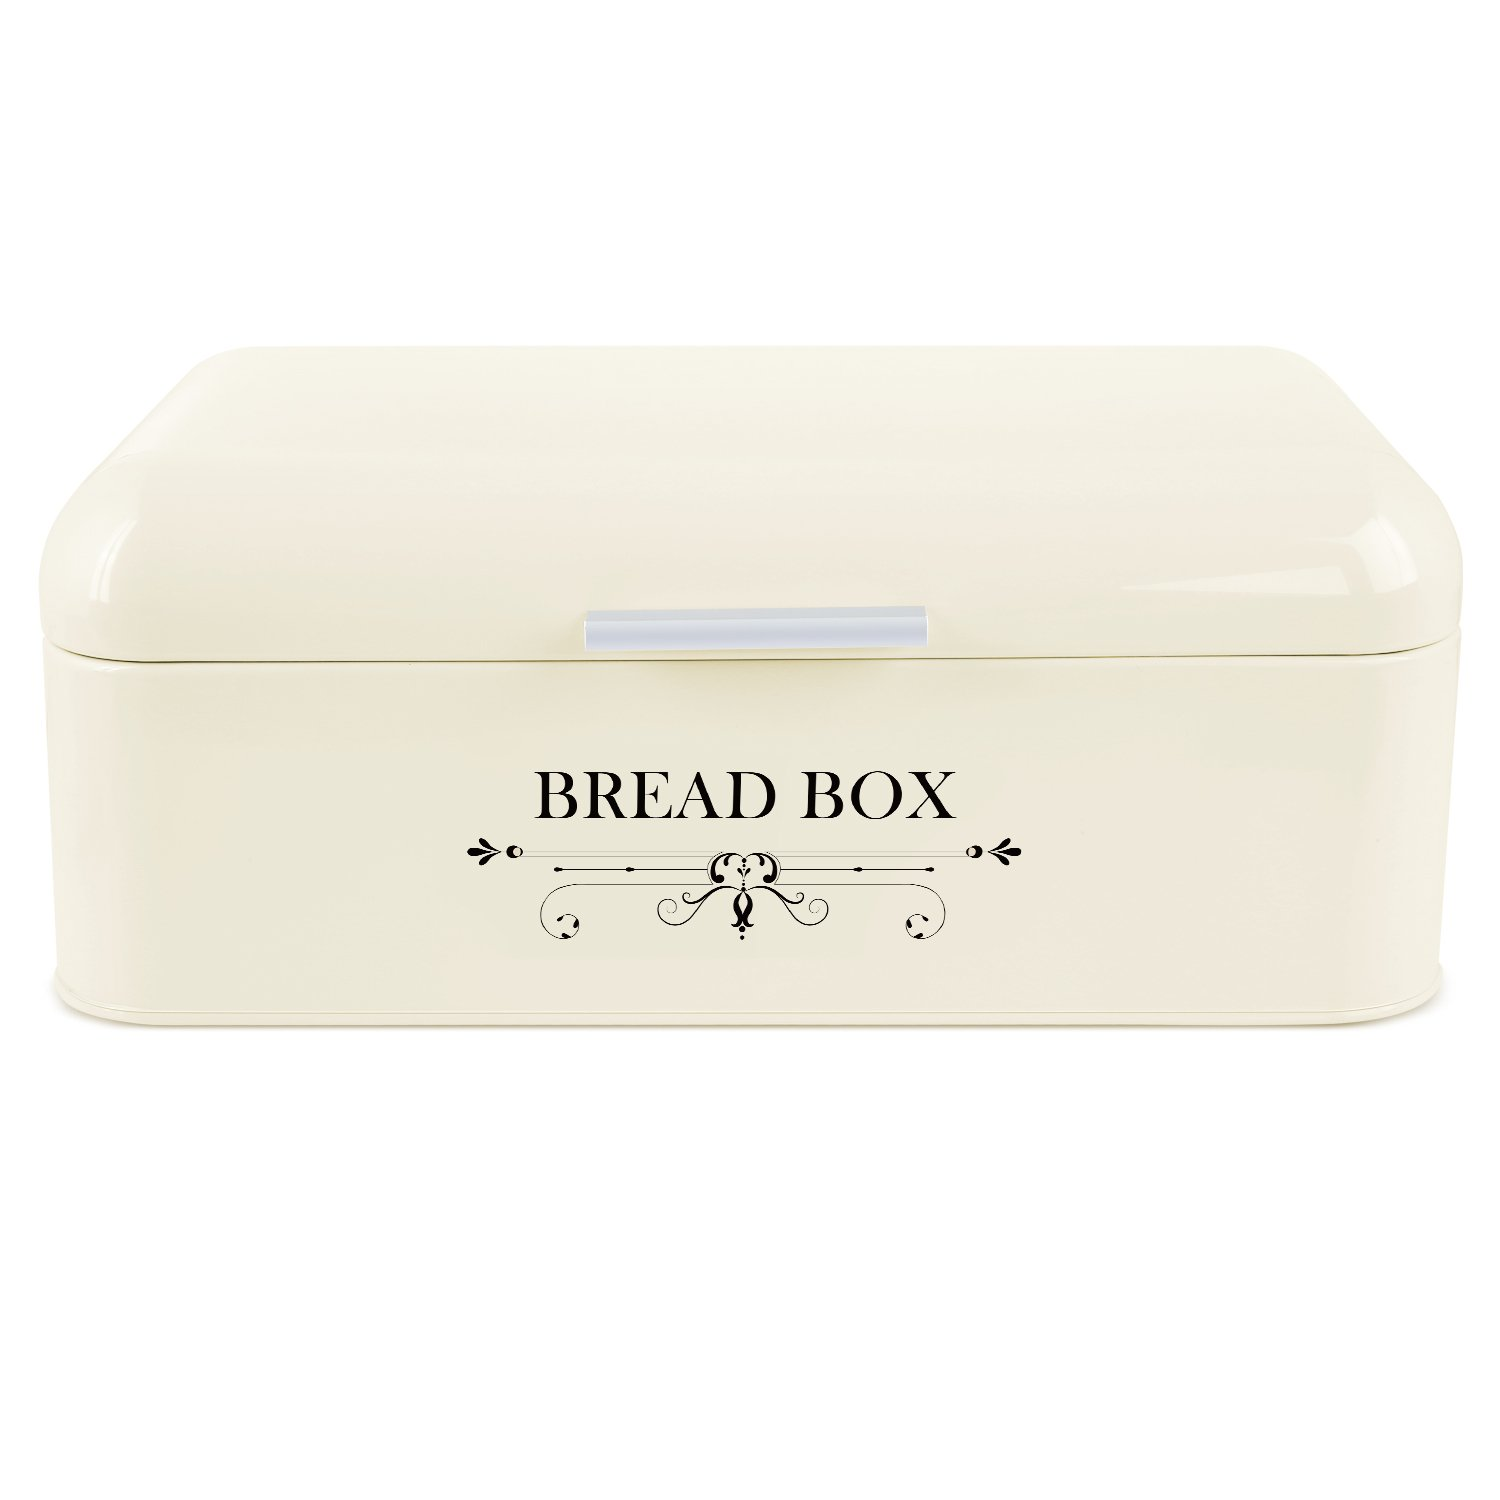 MVPOWER Bread Box Bread Bin Storage Container Extra Large Iron Bin with Powder Coating and Aluminium Alloy Handle,16.5 x 8.9 x 6.5 Inches